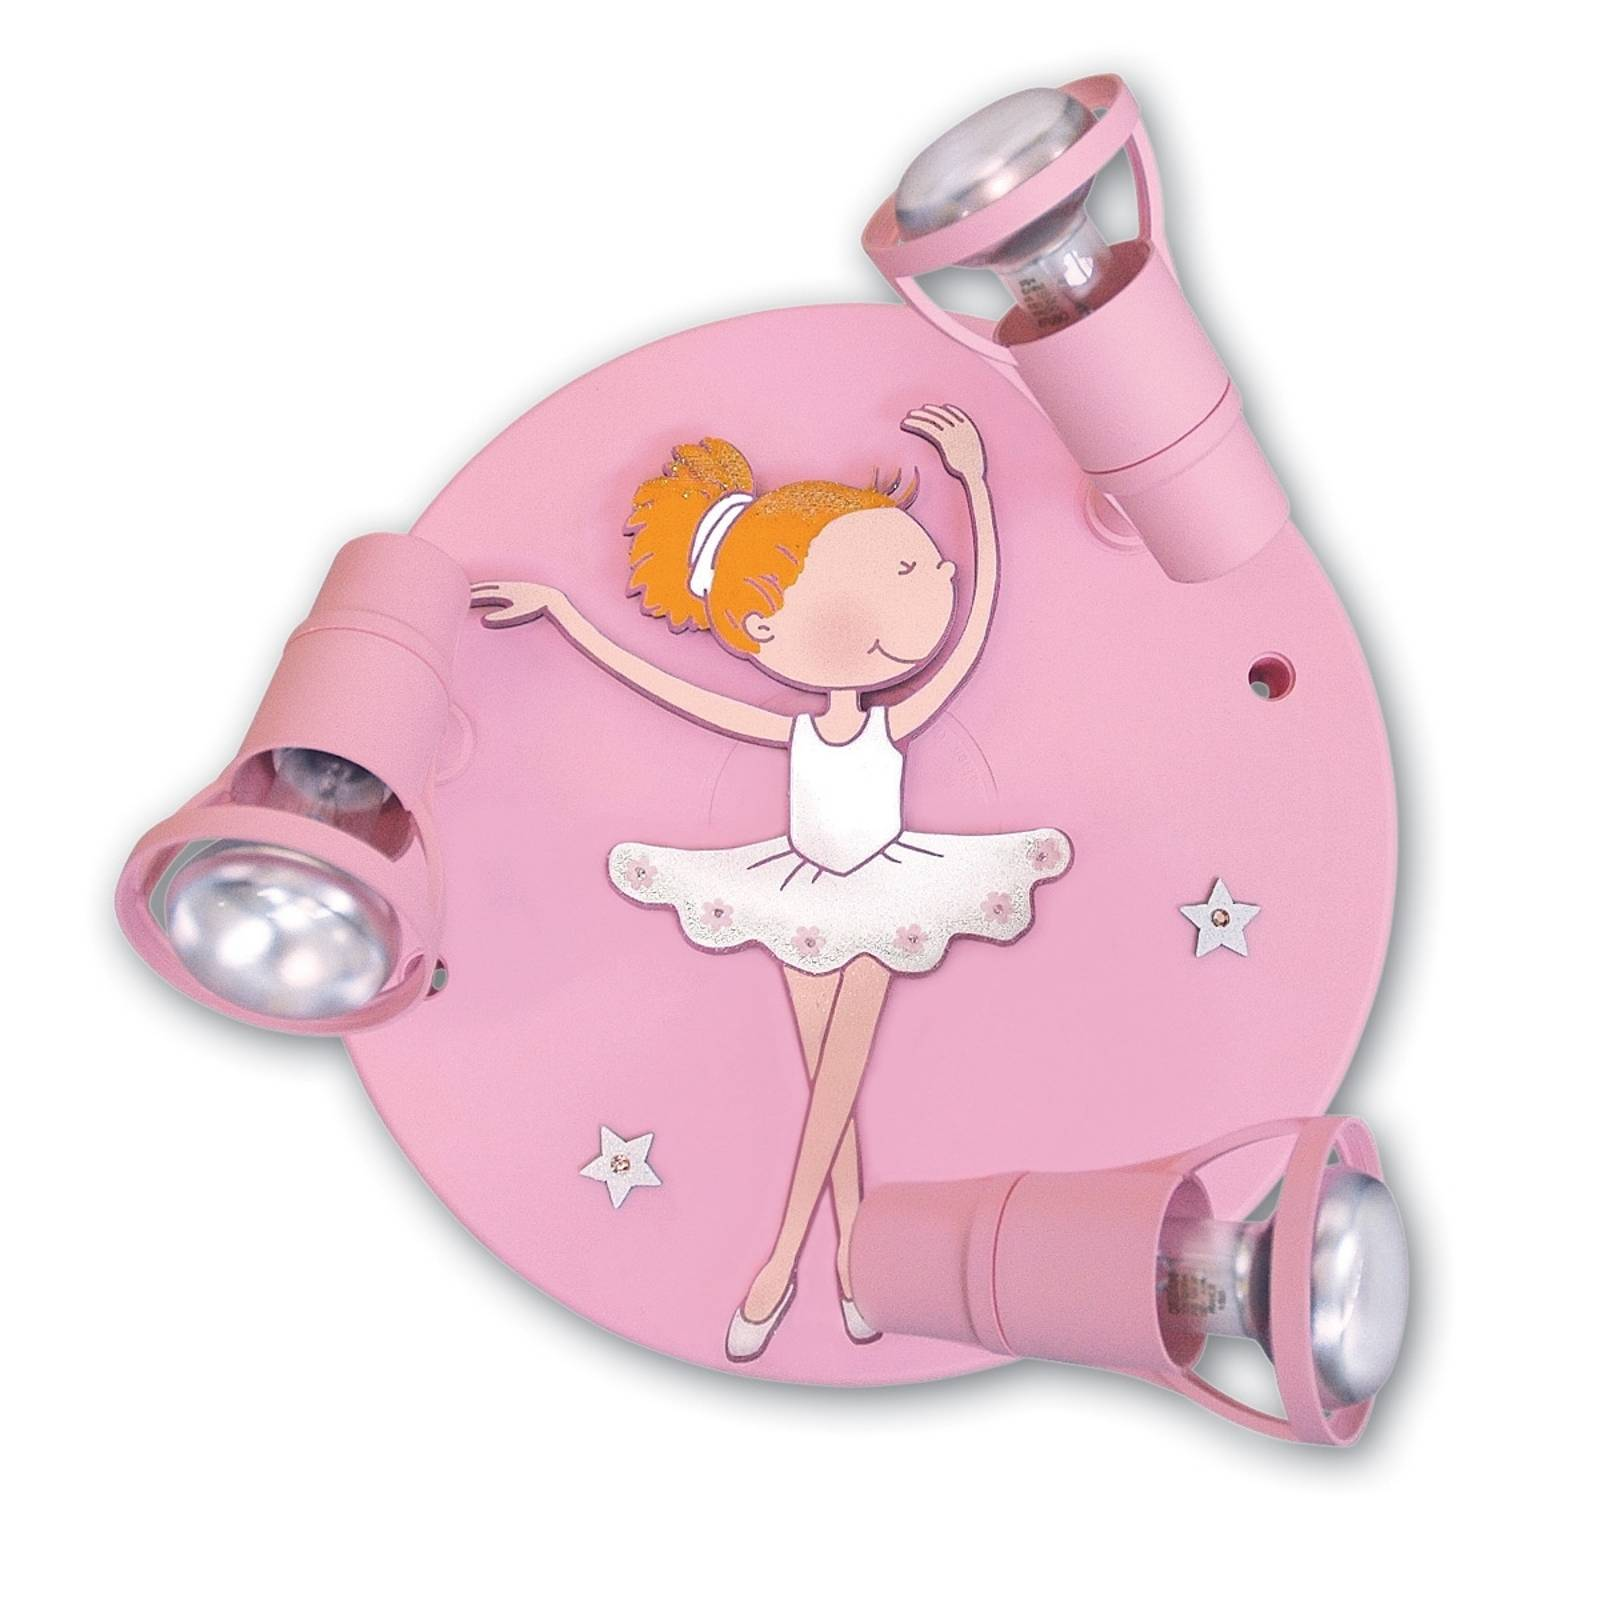 Ballerina ceiling light with three spotlights from Waldi-Leuchten